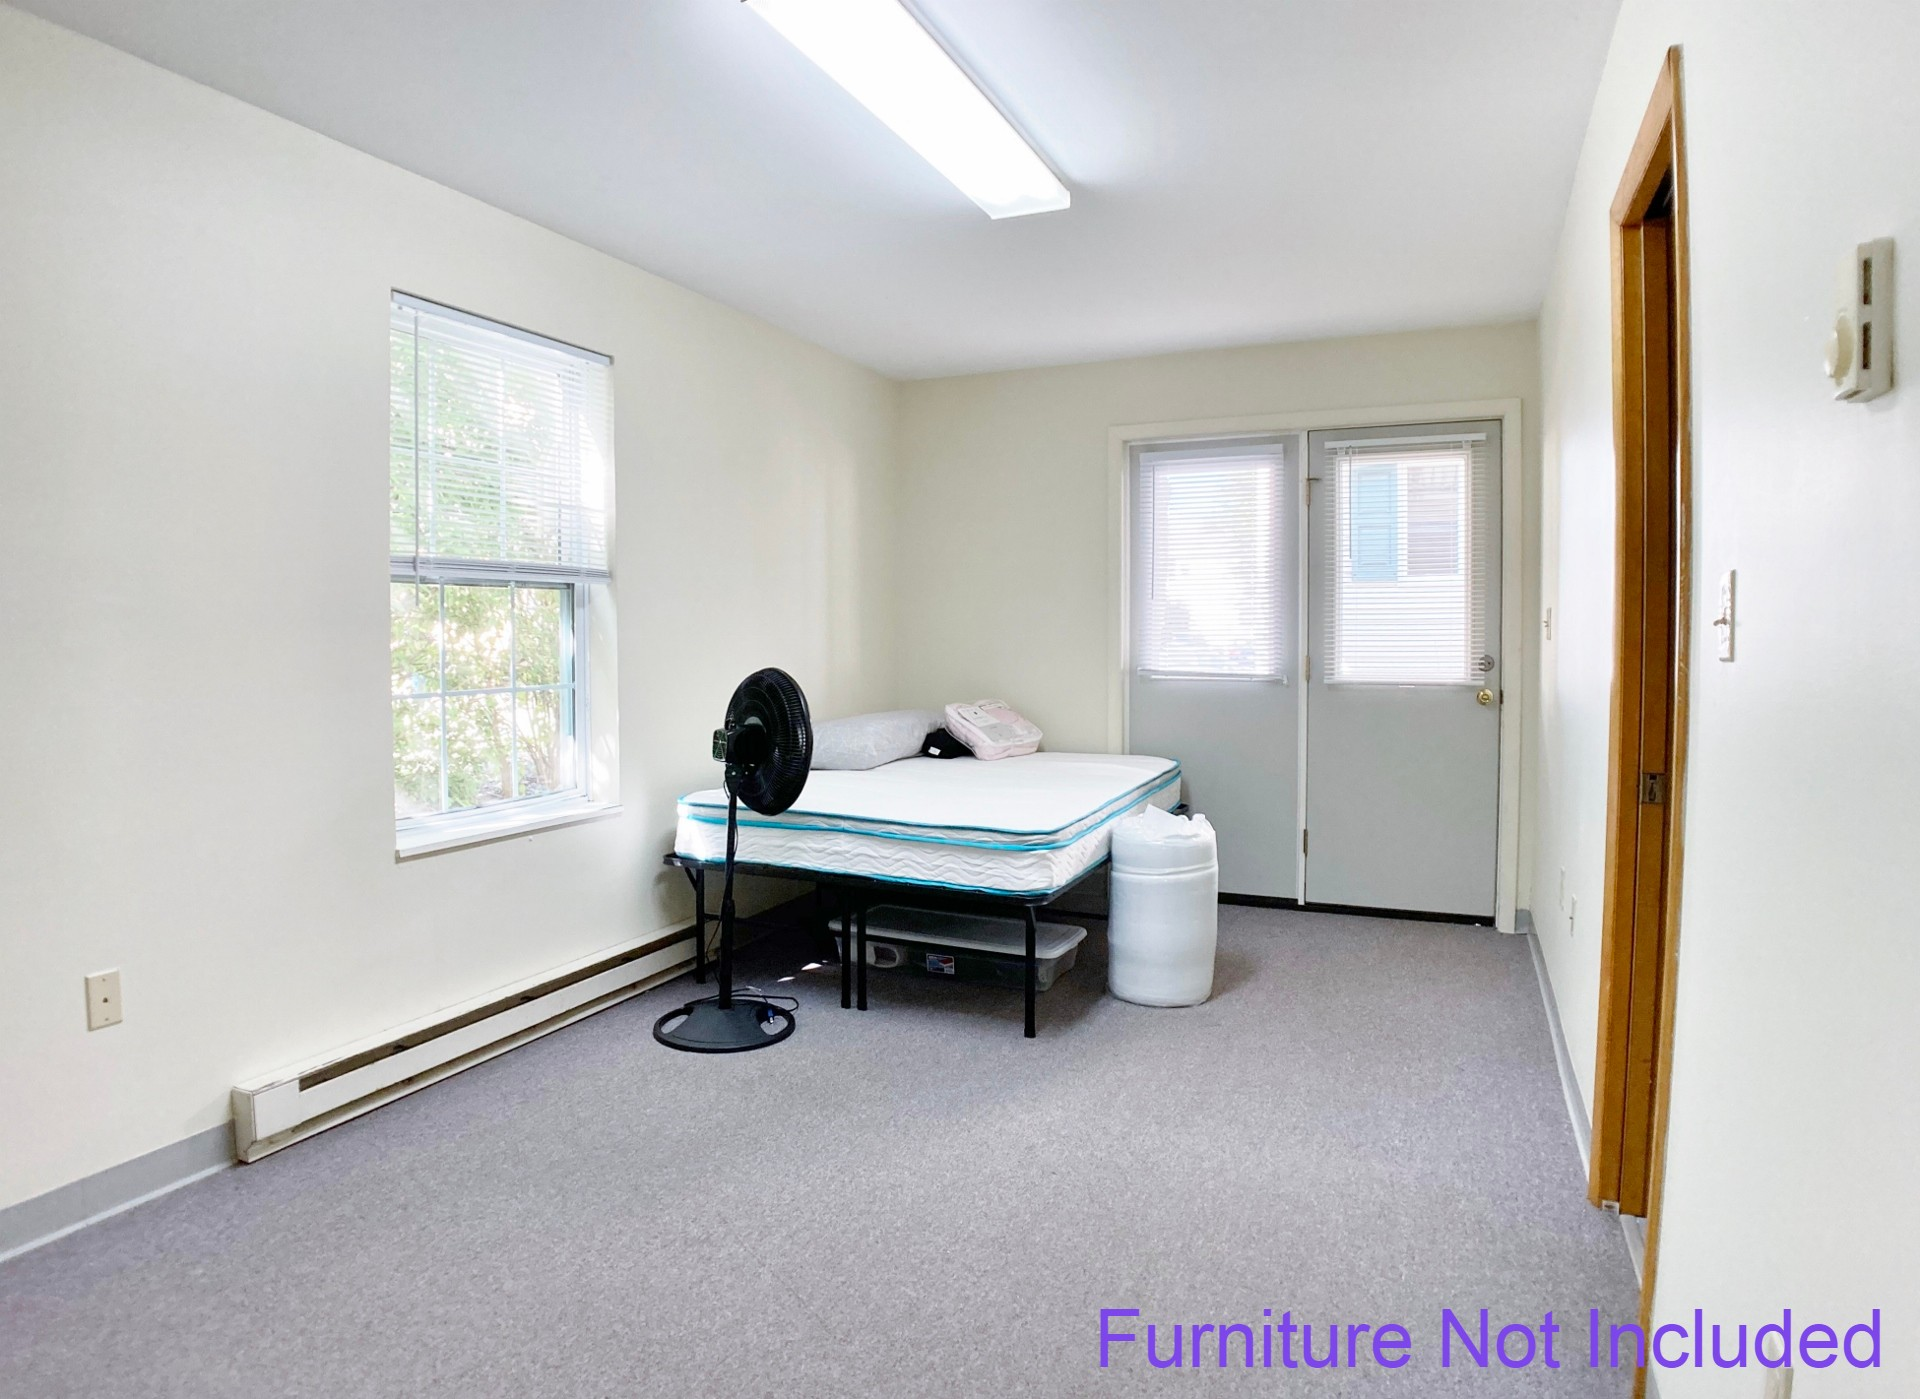 129 Orange Alley, #101, Room 4 (furniture not included)